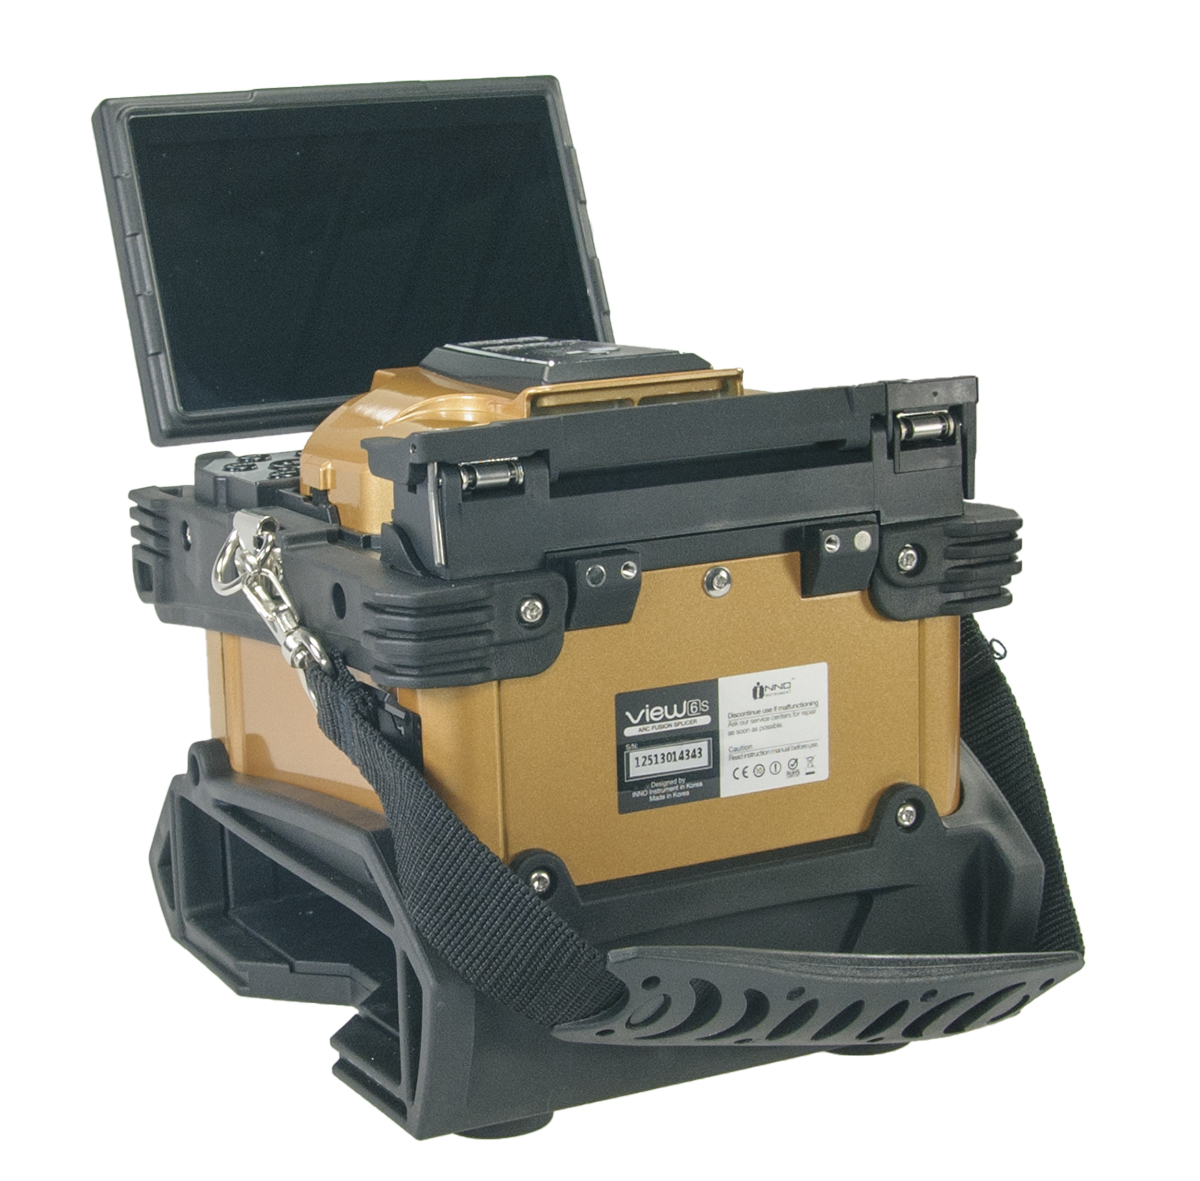 INNO View6S ARC Fusion Splicer